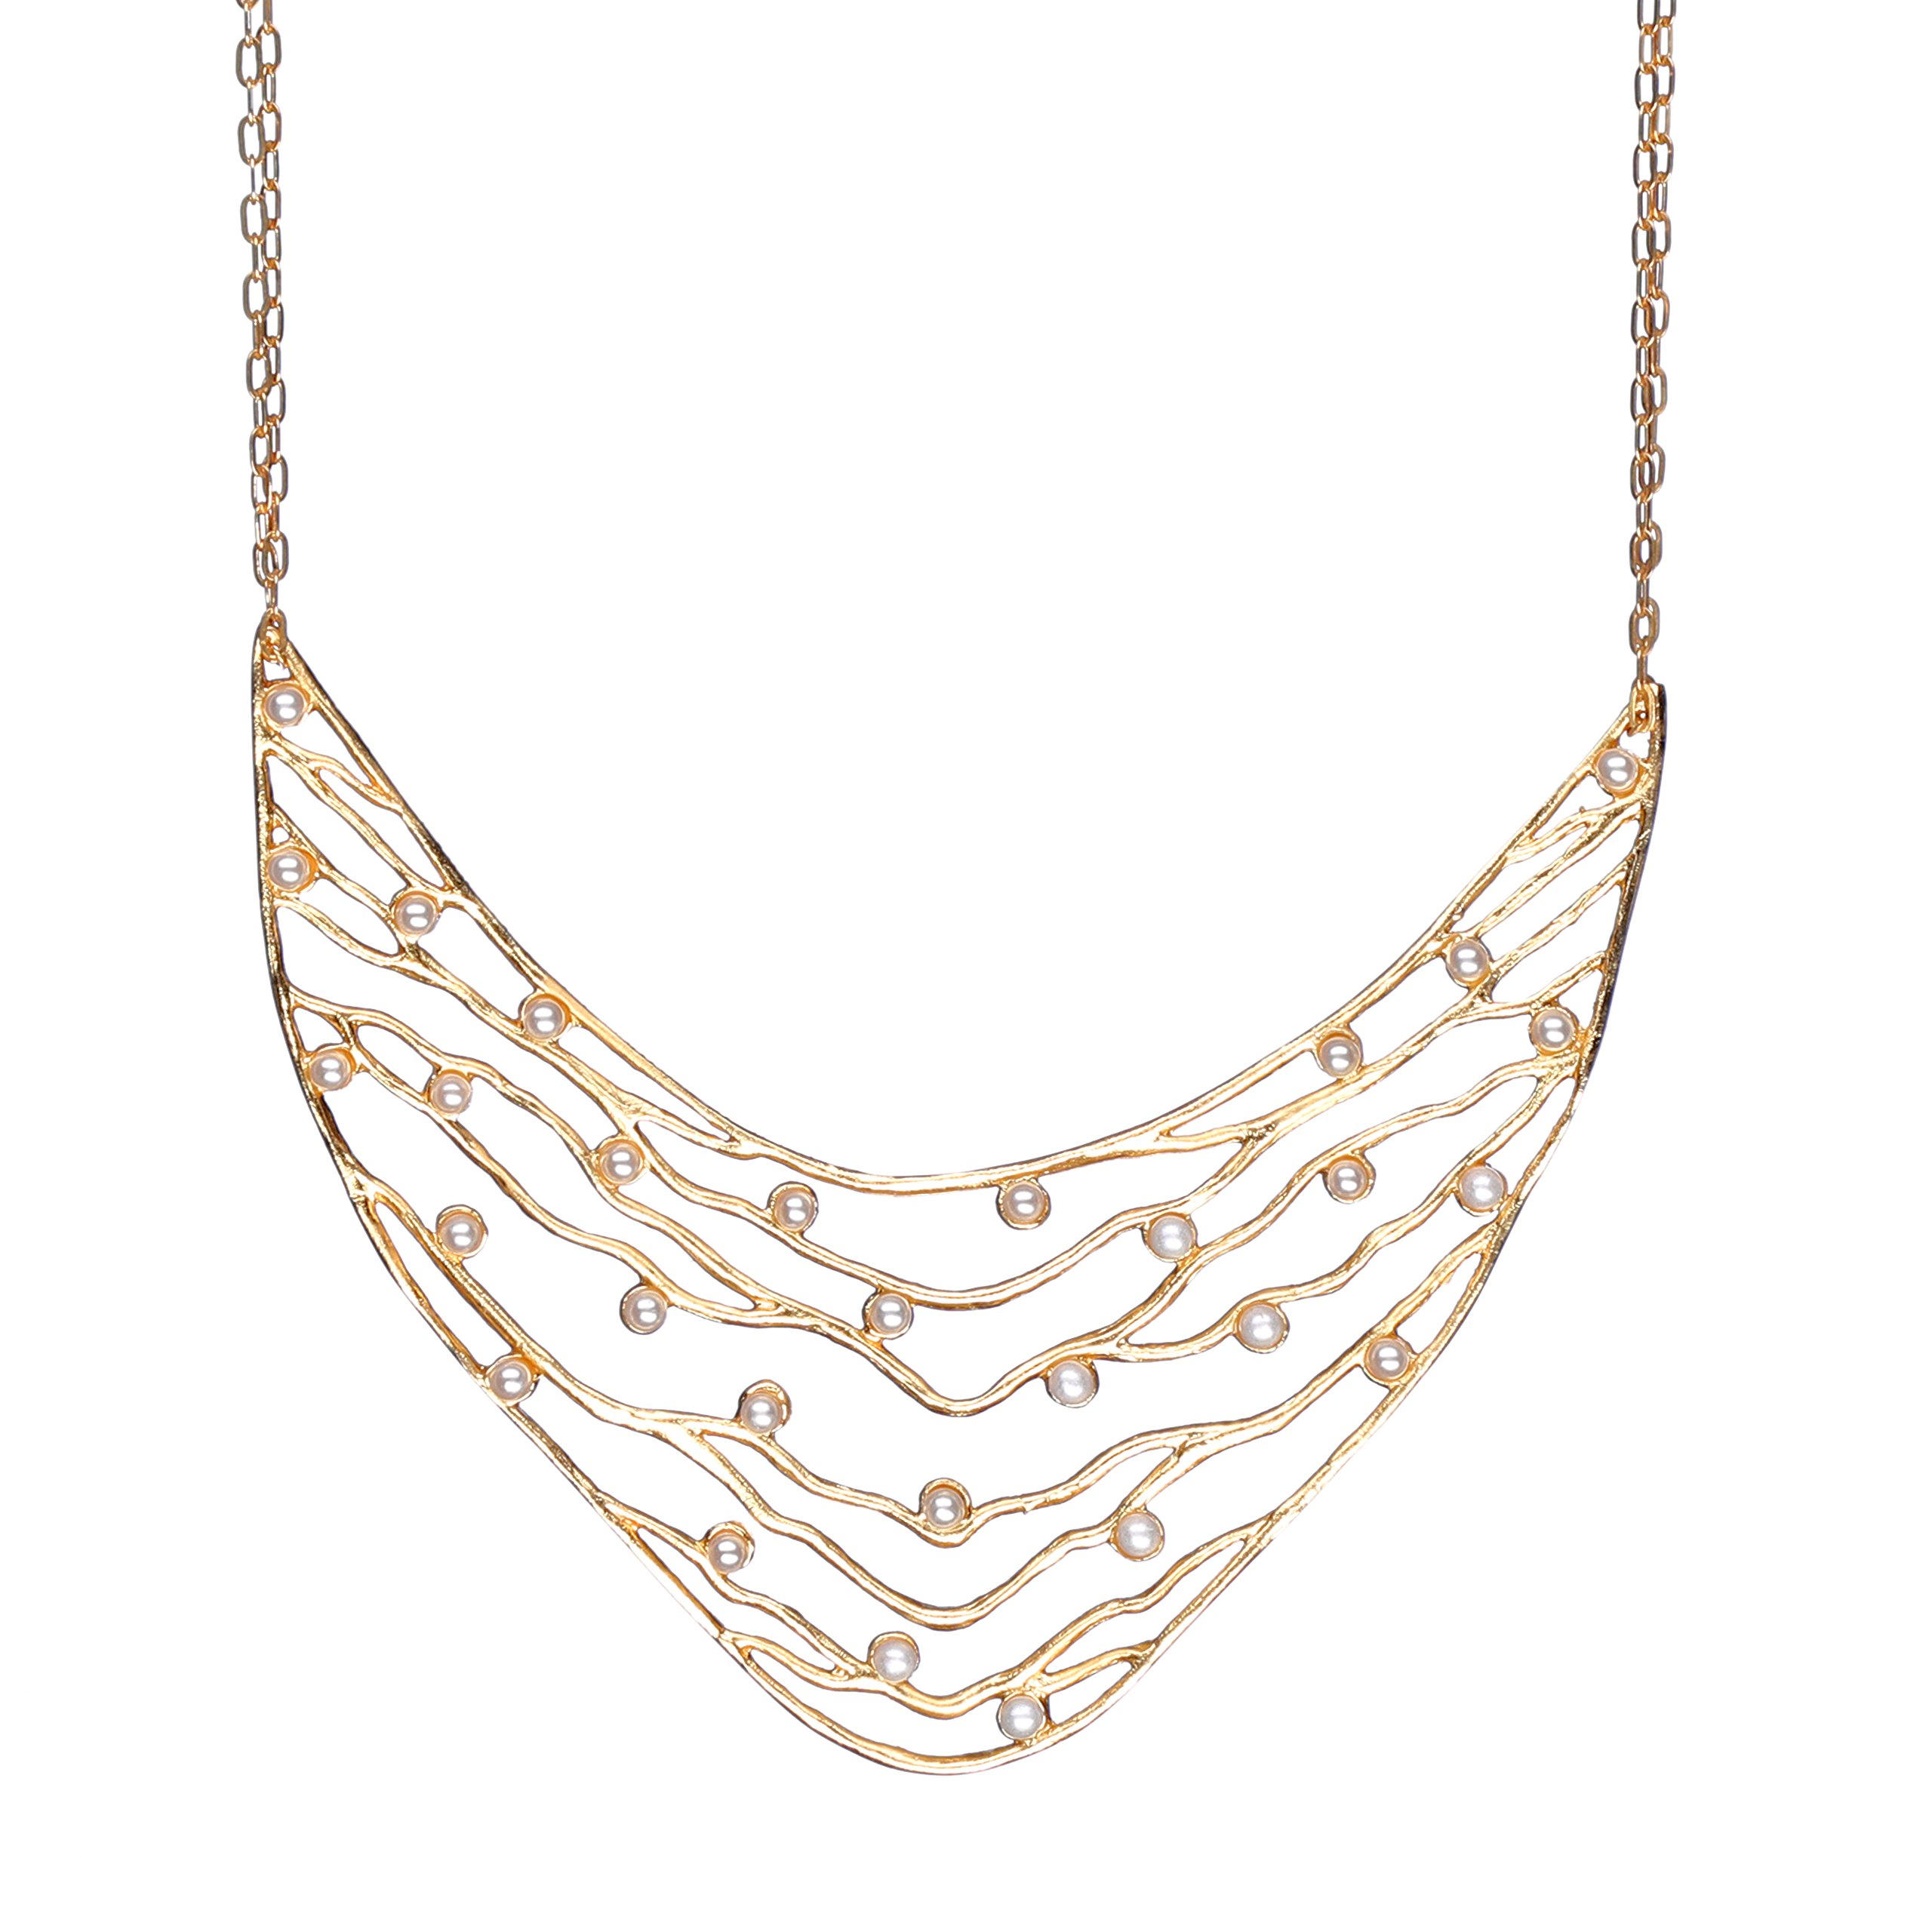 Intricate Branches Pearl Collar Necklace (24k Gold-Plated, Simulated Pearls) by Mercedes Shaffer